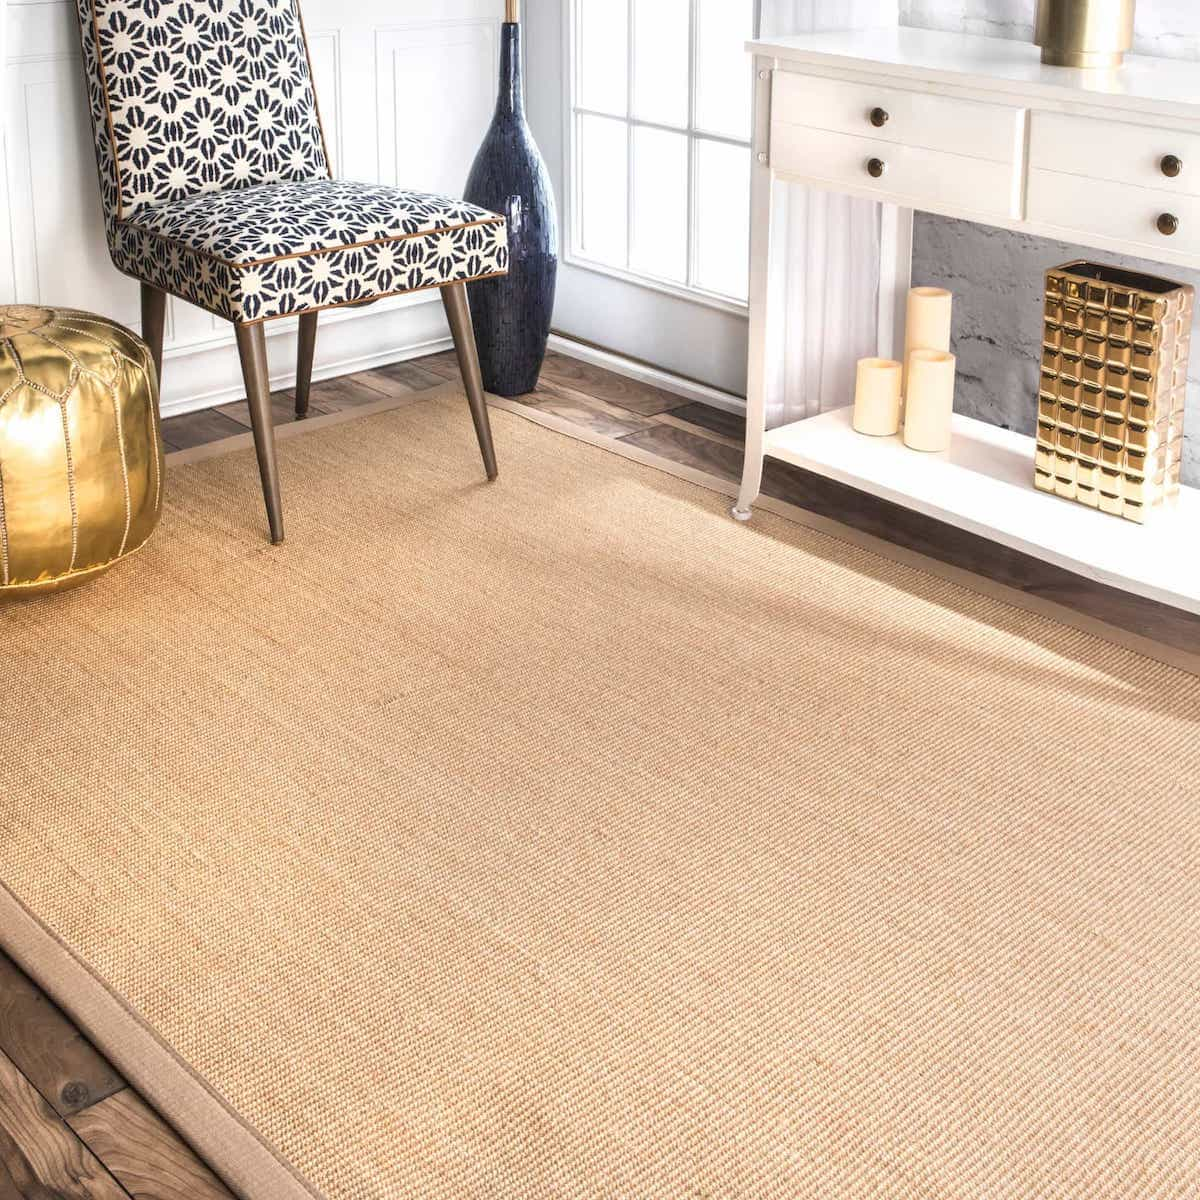 7x9 sisal rug for living room area